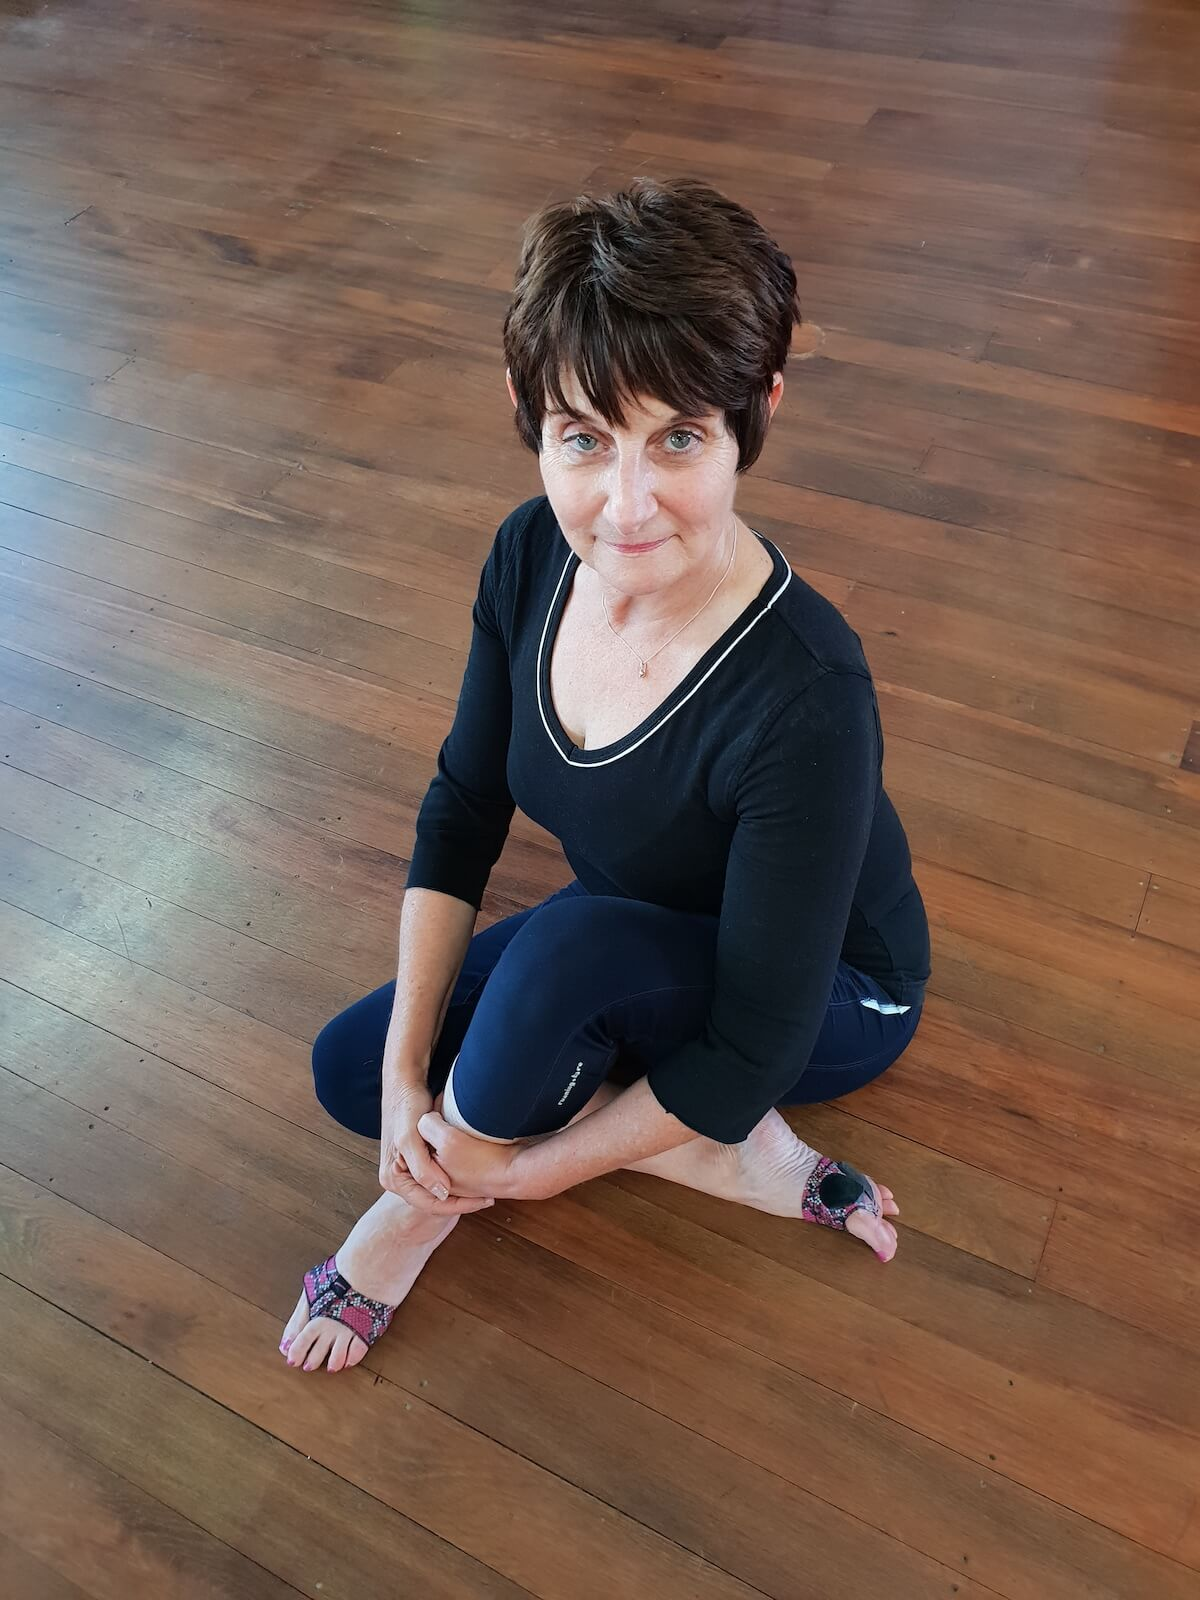 Dance Express Owner, Glenys Murphy